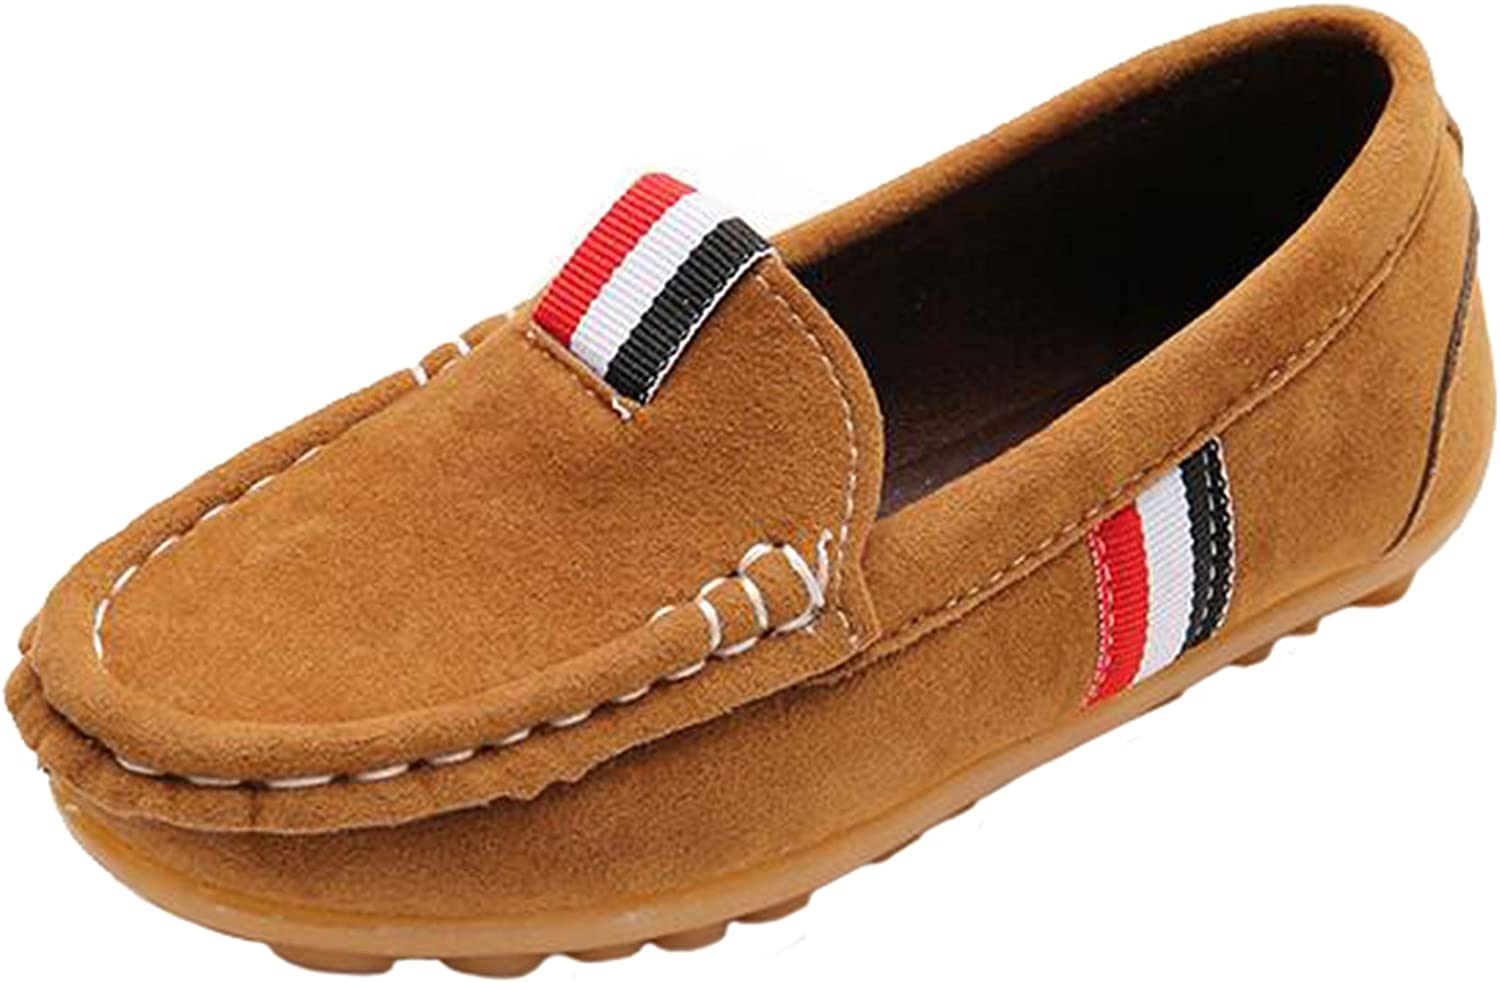 PPXID Toddler Little Girl's Boy's Slip-on Loafers Casual Moccasin Oxford Flat Shoes